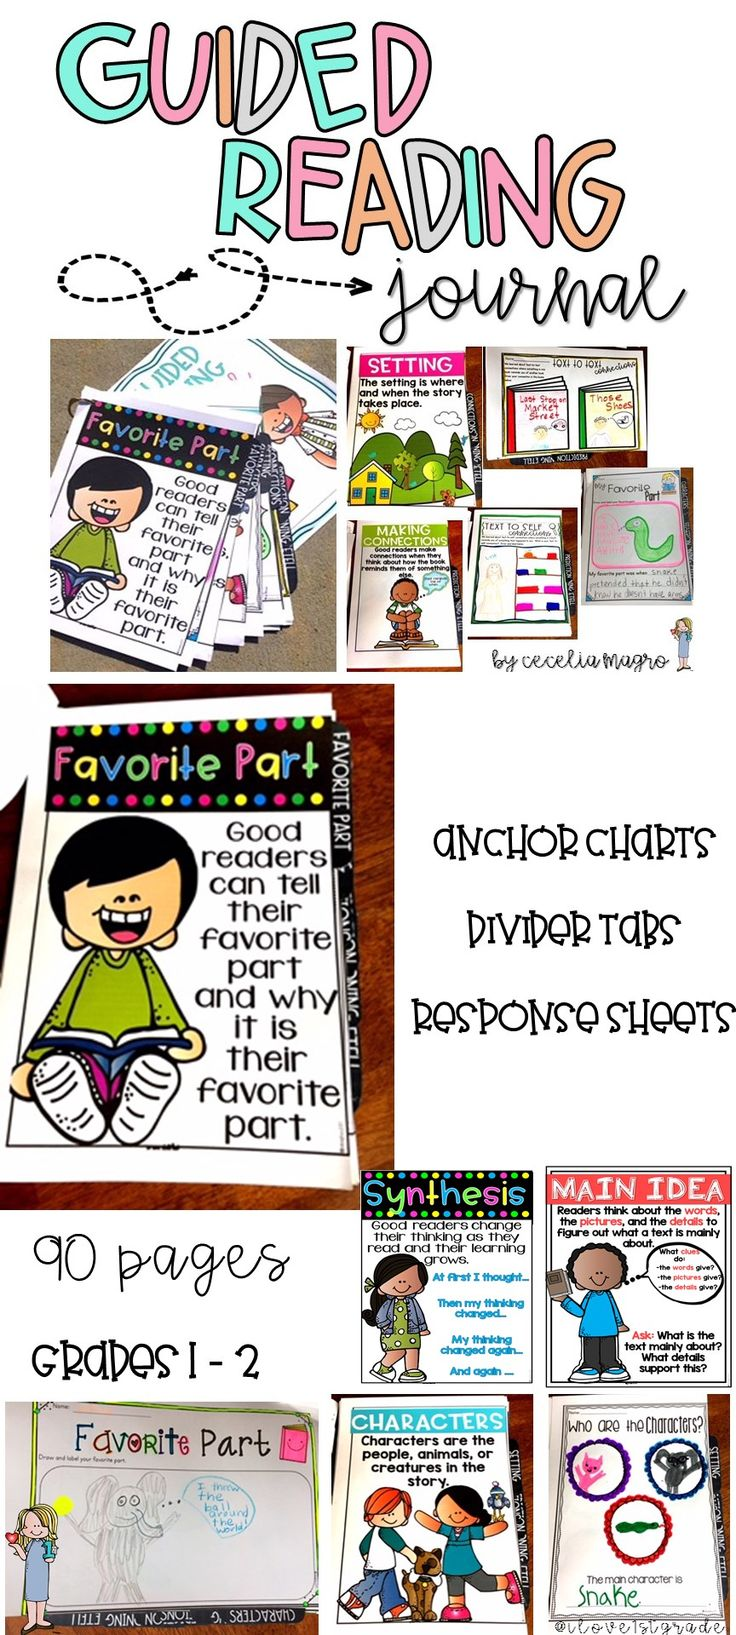 Rigorous, focused comprehension practice to use with any book. Use during guided reading, reader's workshop, whole or small group instruction, intervention, or as homework. Anchor charts with divider tabs for each of the ten strategies as well as response pages. Most of the response sheets include a page for illustrating and labeling and a page for writing allowing you to differentiate for the needs of your students. I use this resource in my guided reading groups to ensure that each…